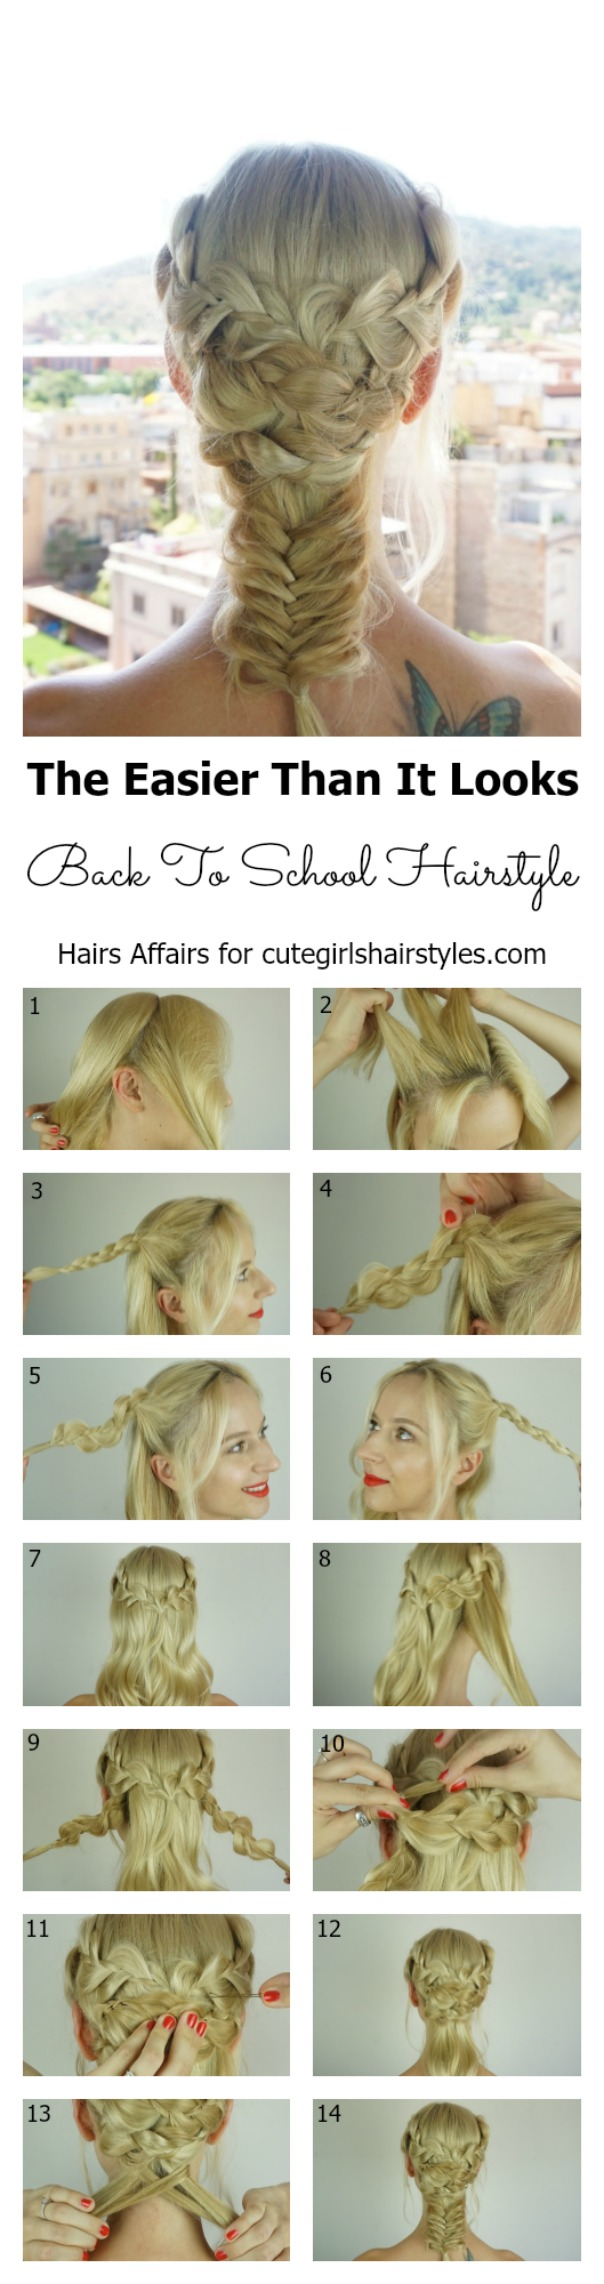 easy back to school hairstyle | cute girls hairstyles